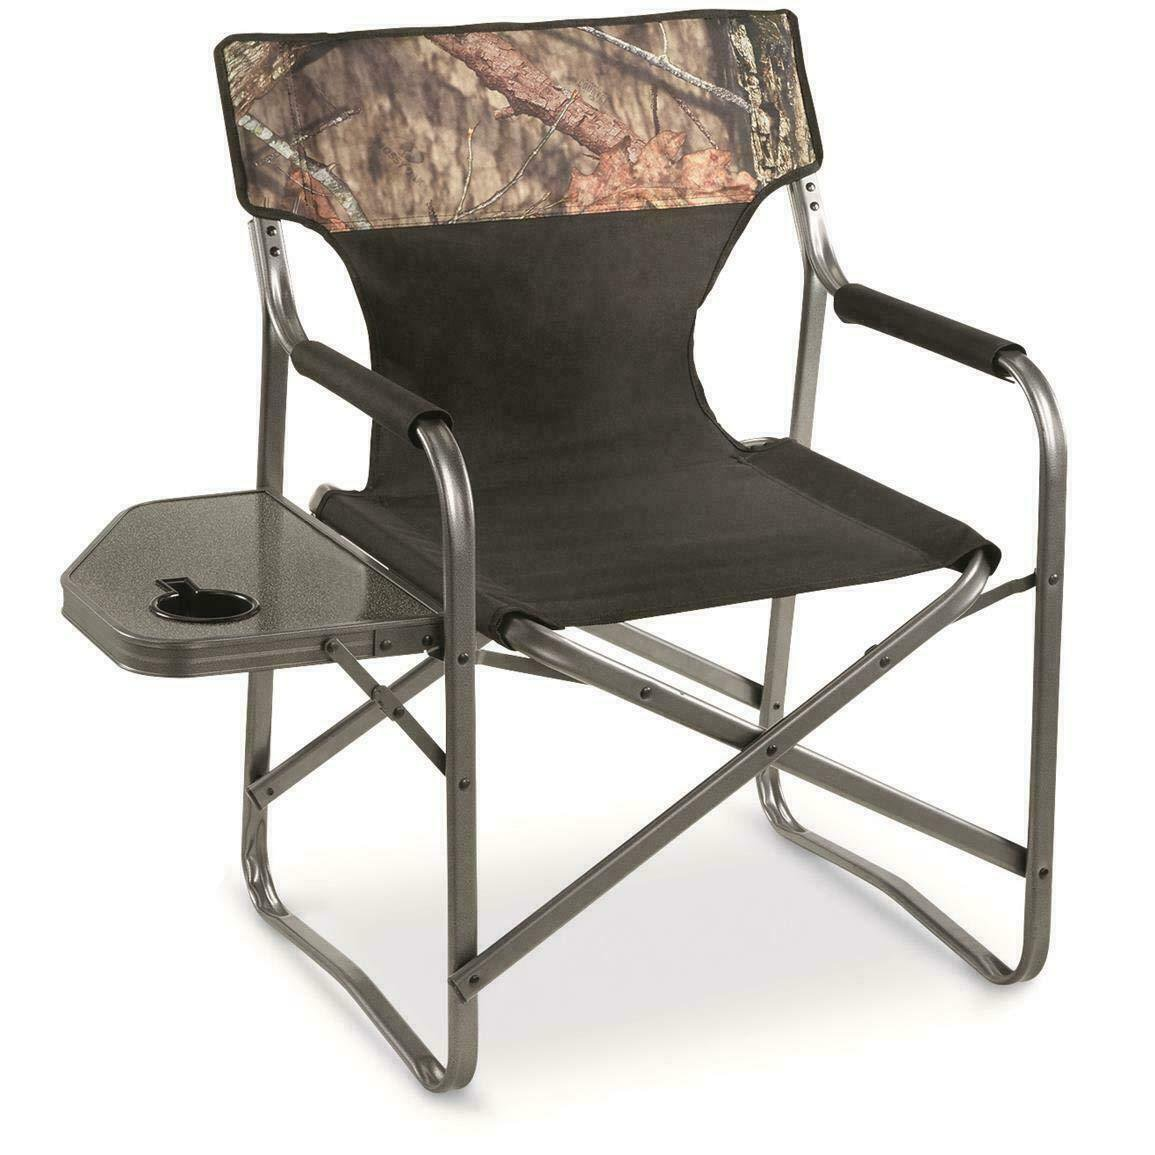 Chair Camping Outdoor Forest Hiking Military Side Stand